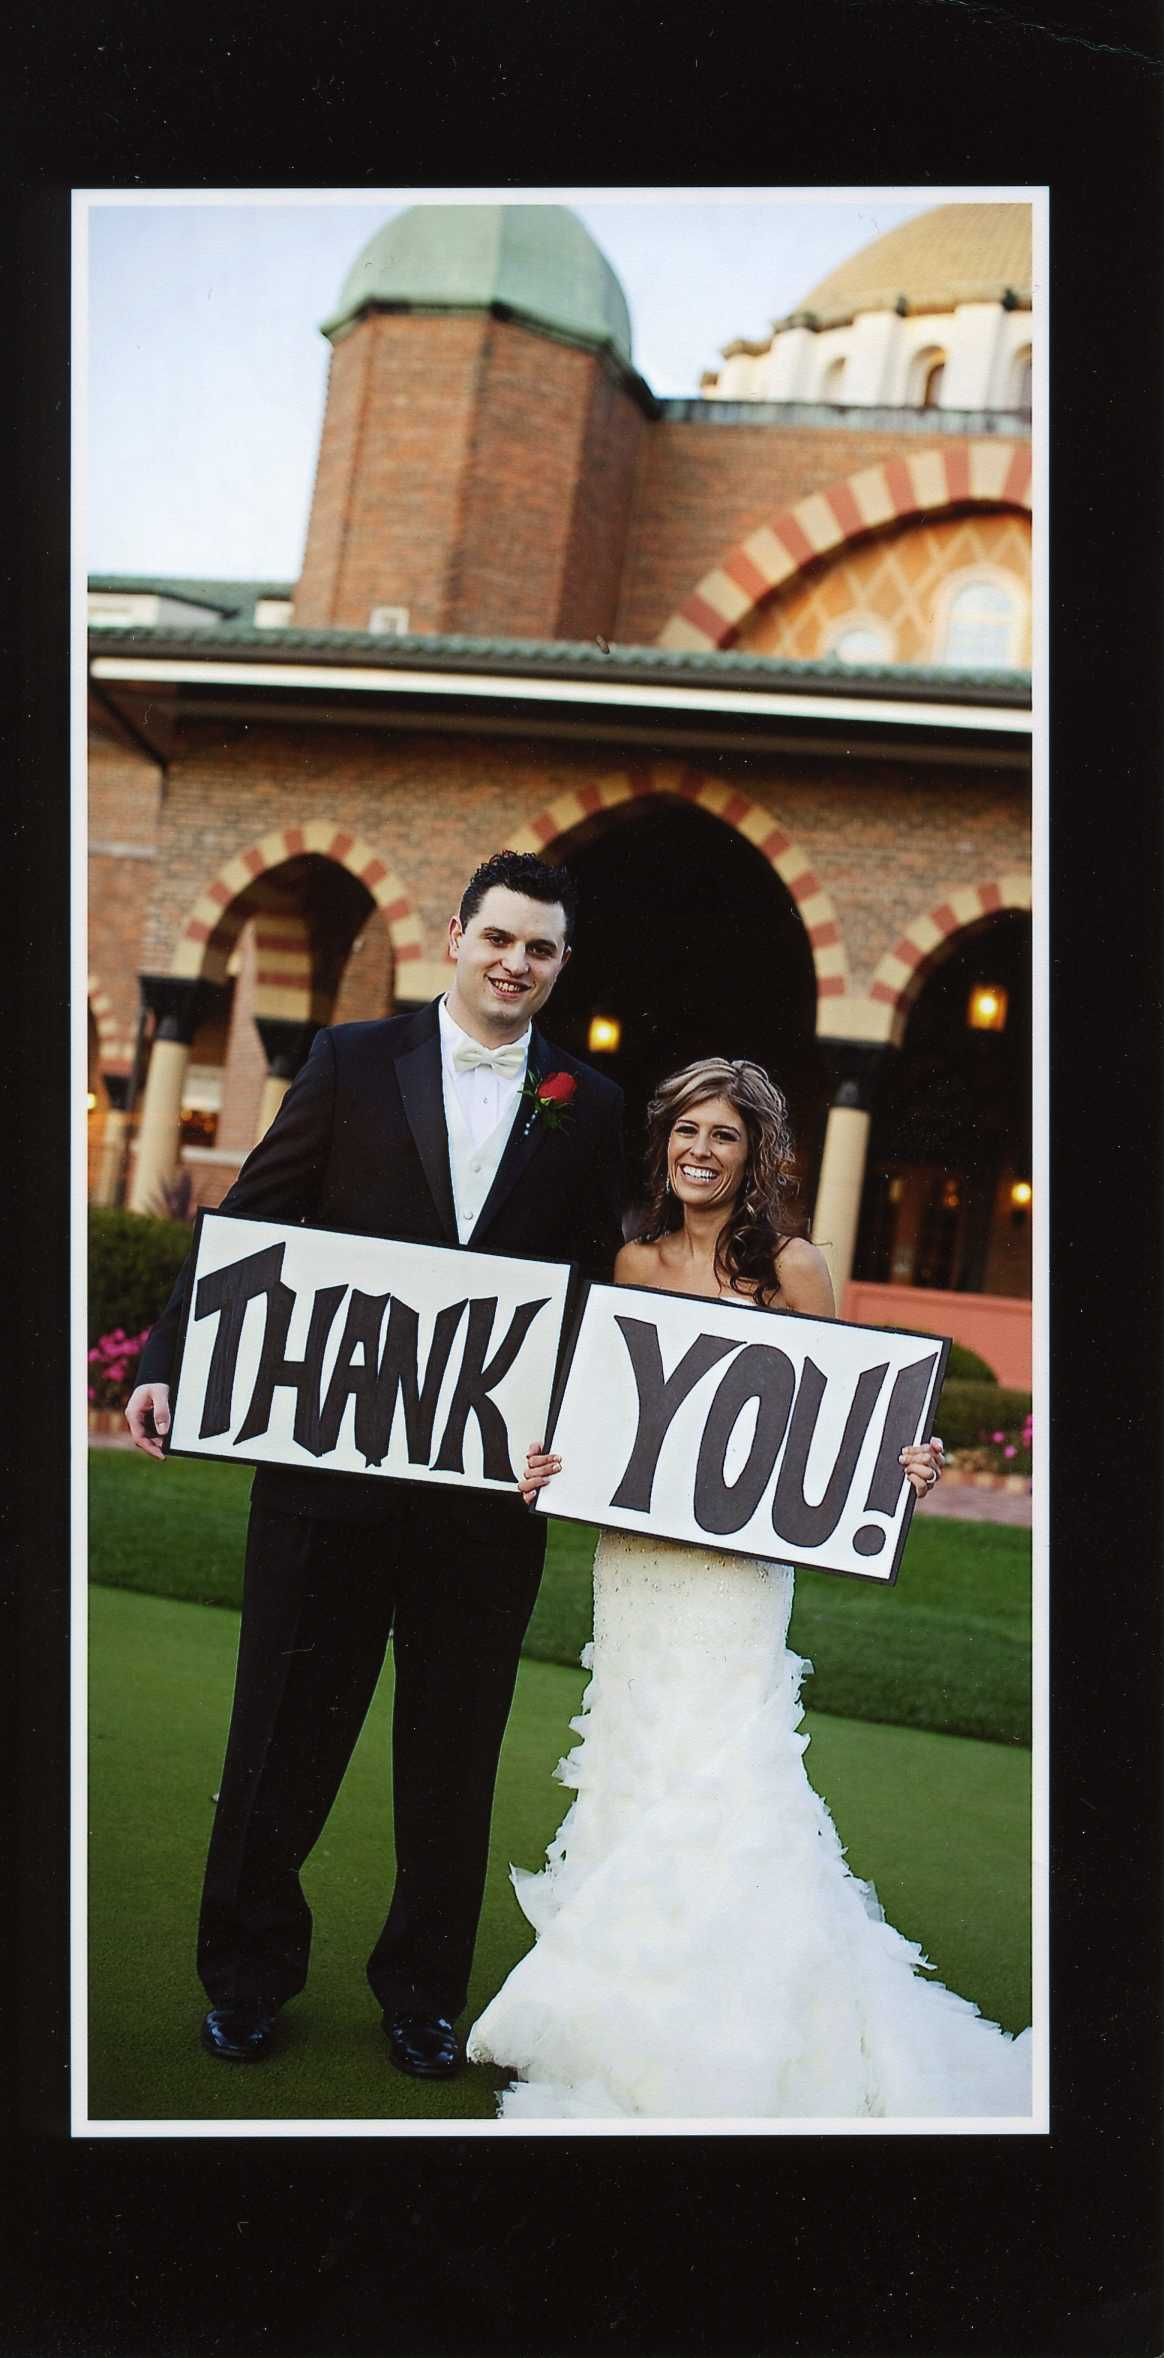 Medinah Country Club Wedding Video Thank You